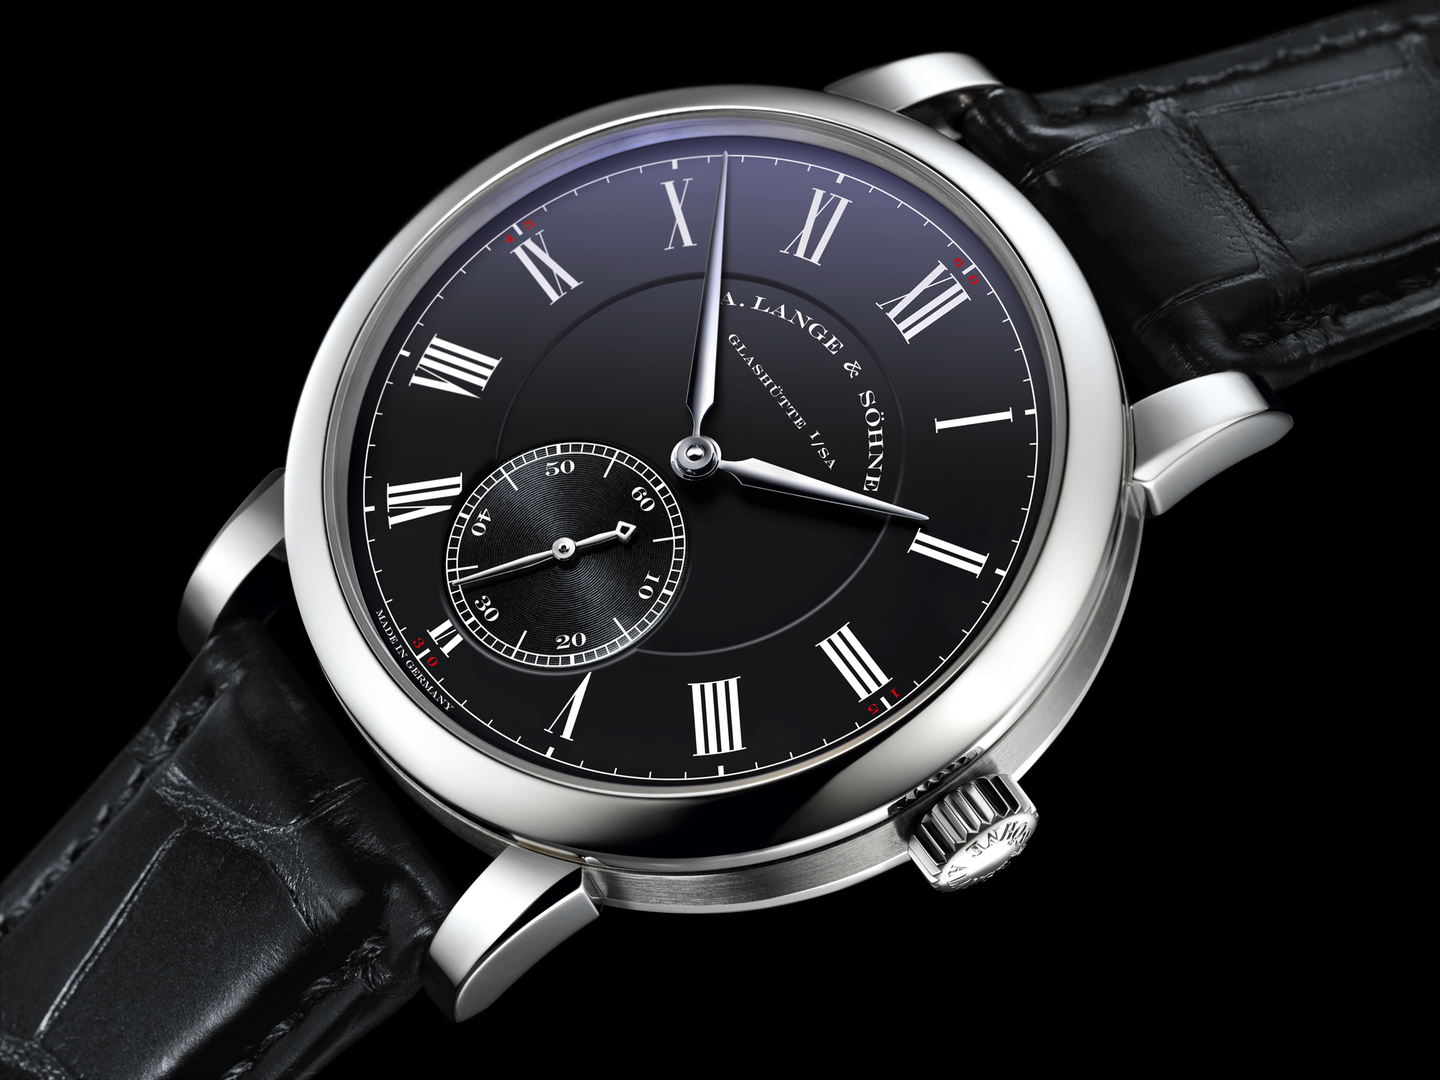 2016 watch recommended 9 german watch brands luxury watches brands